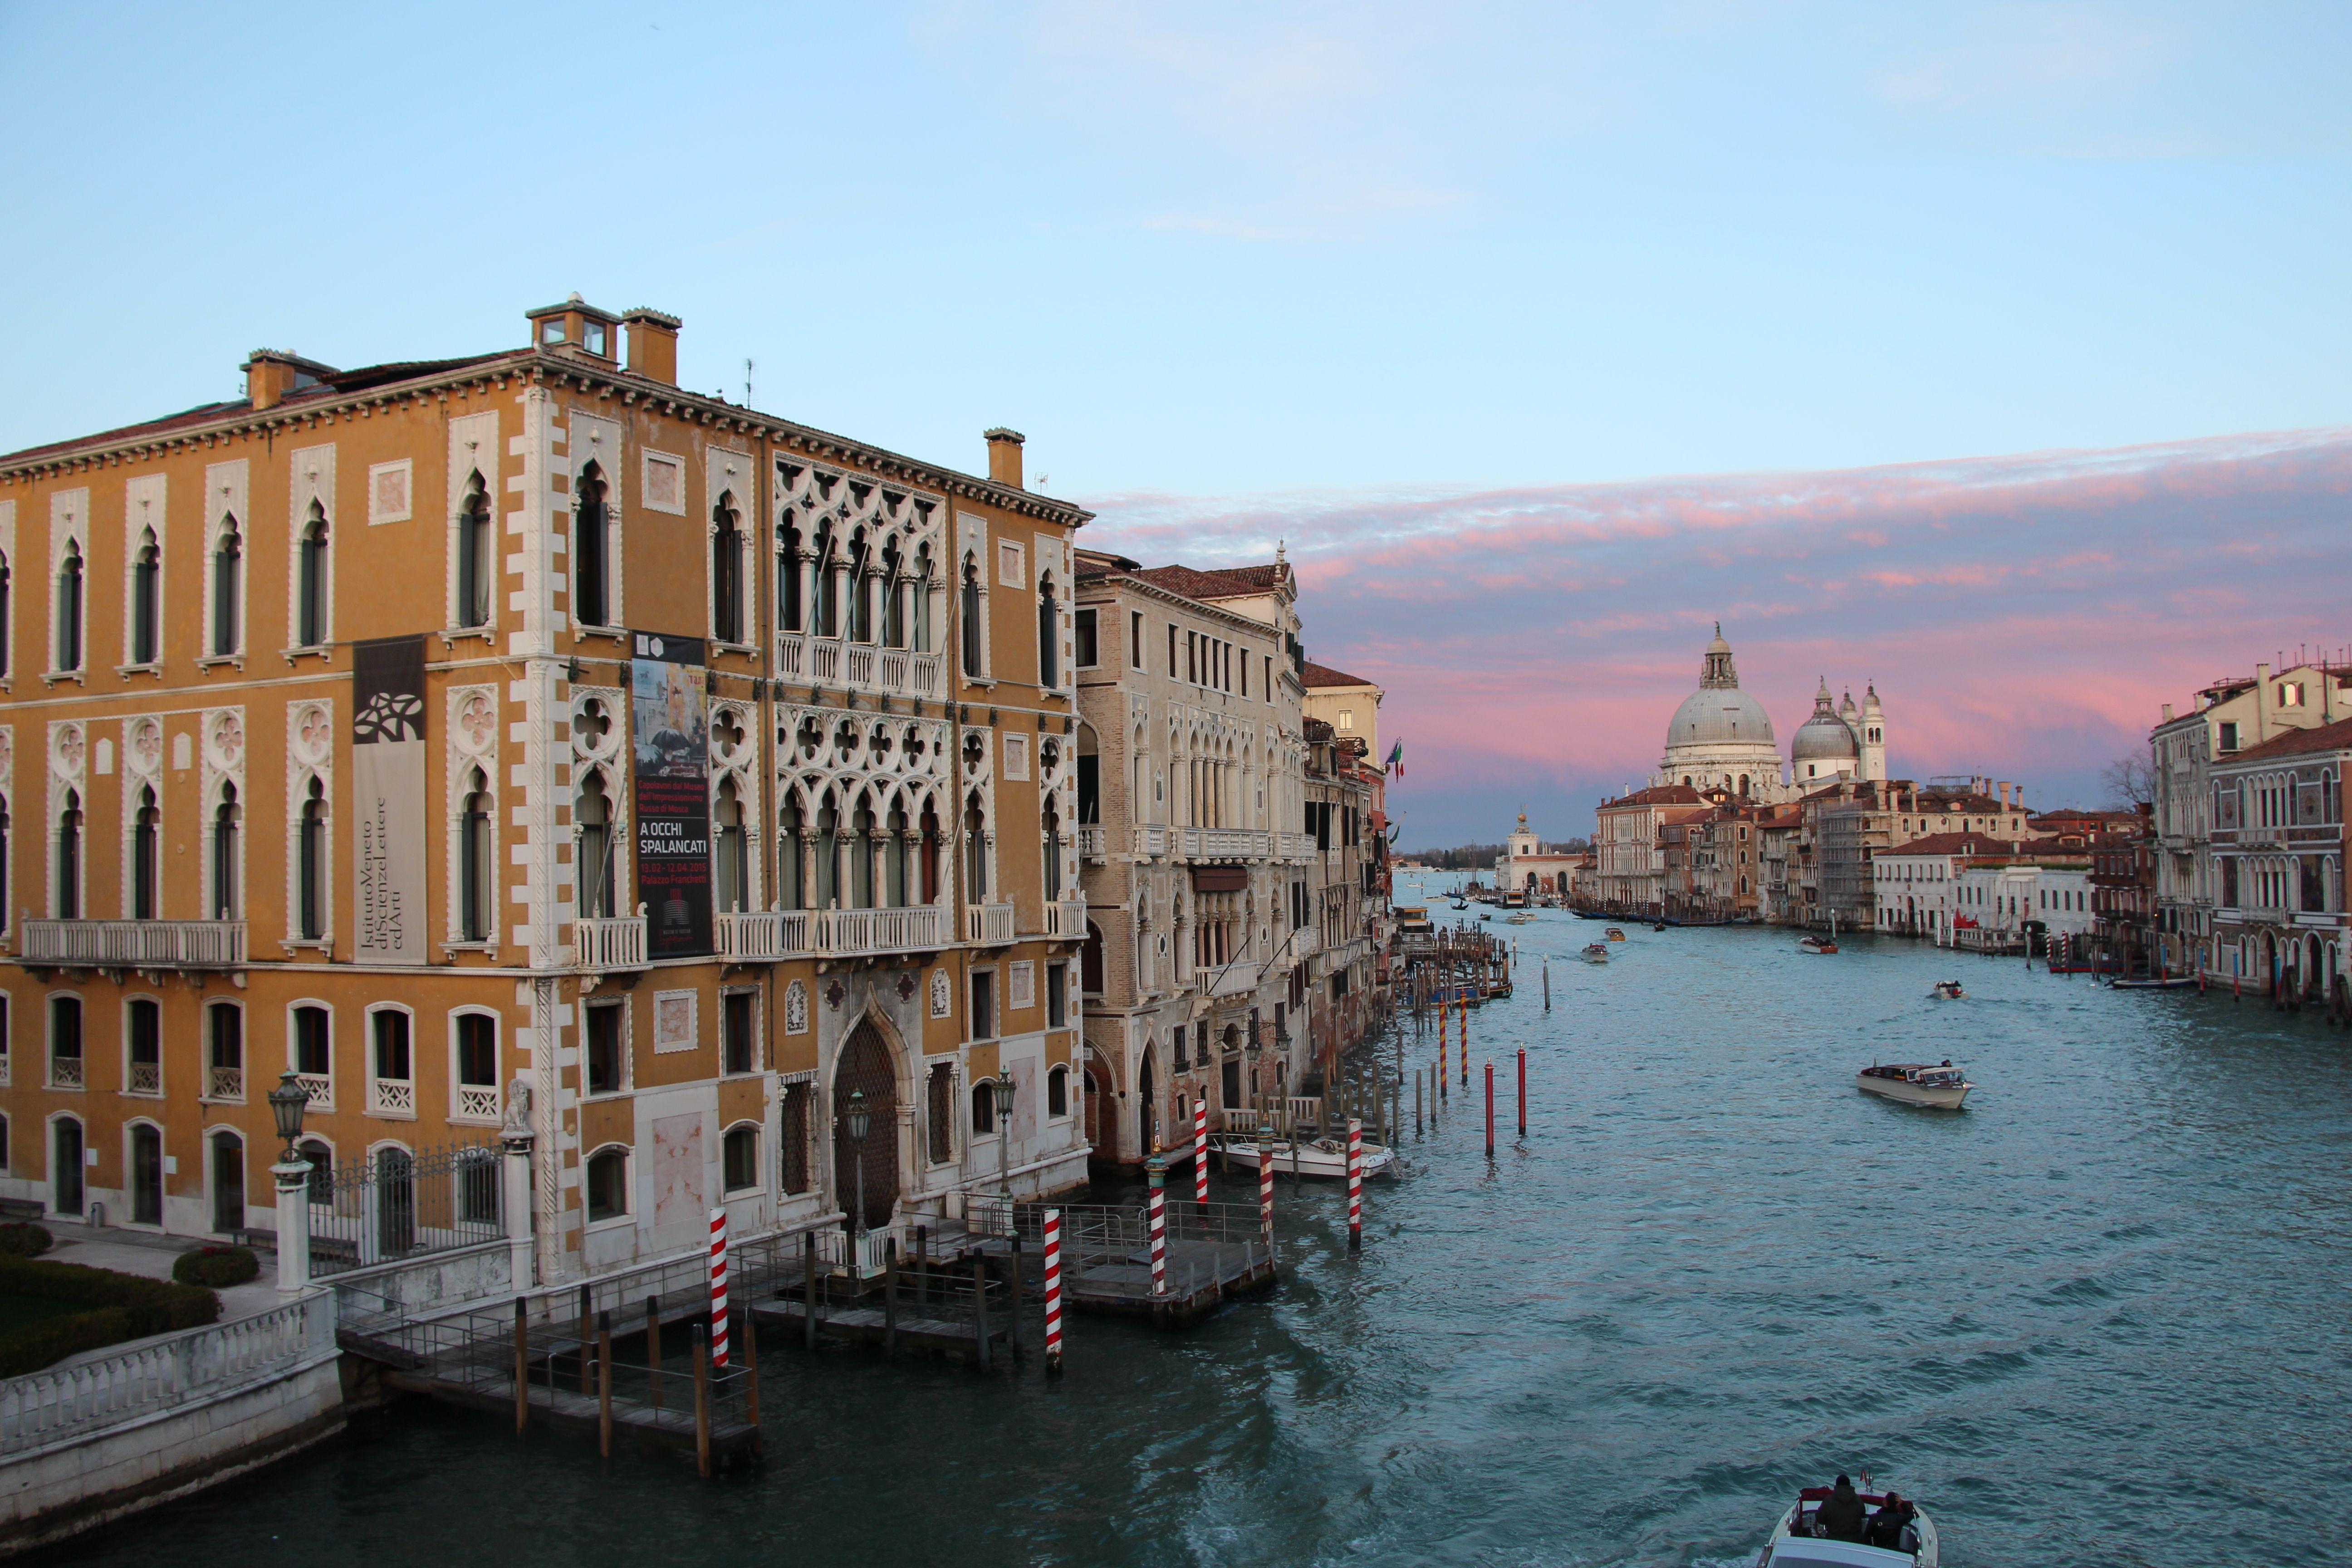 A view down the Grand Canal in Venice, Italy. #venezia #water #boats #grandcanal